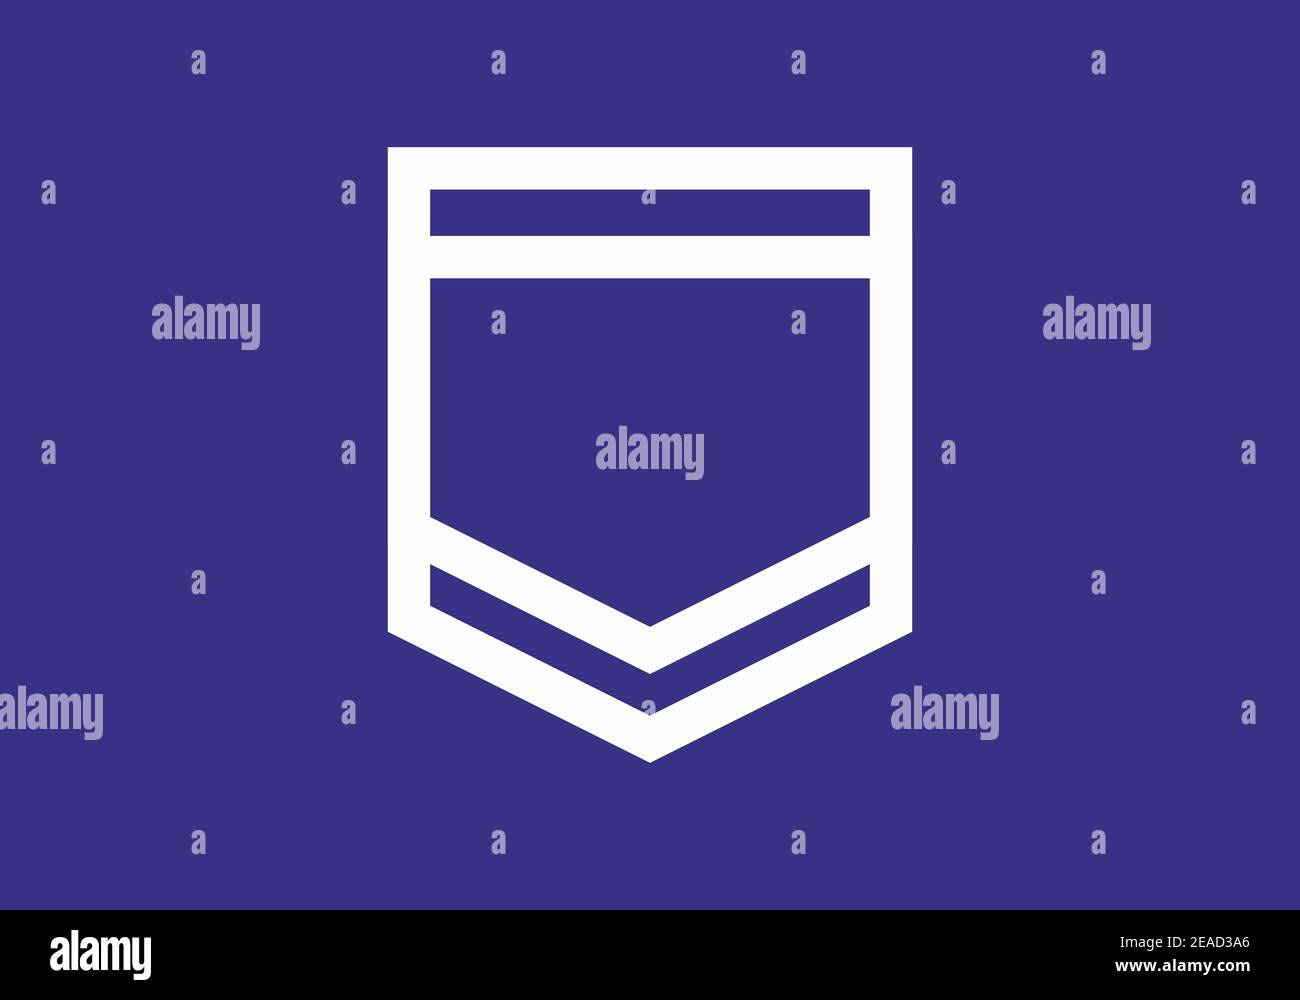 Trapezoid Style High Resolution Stock Photography and Images   Alamy